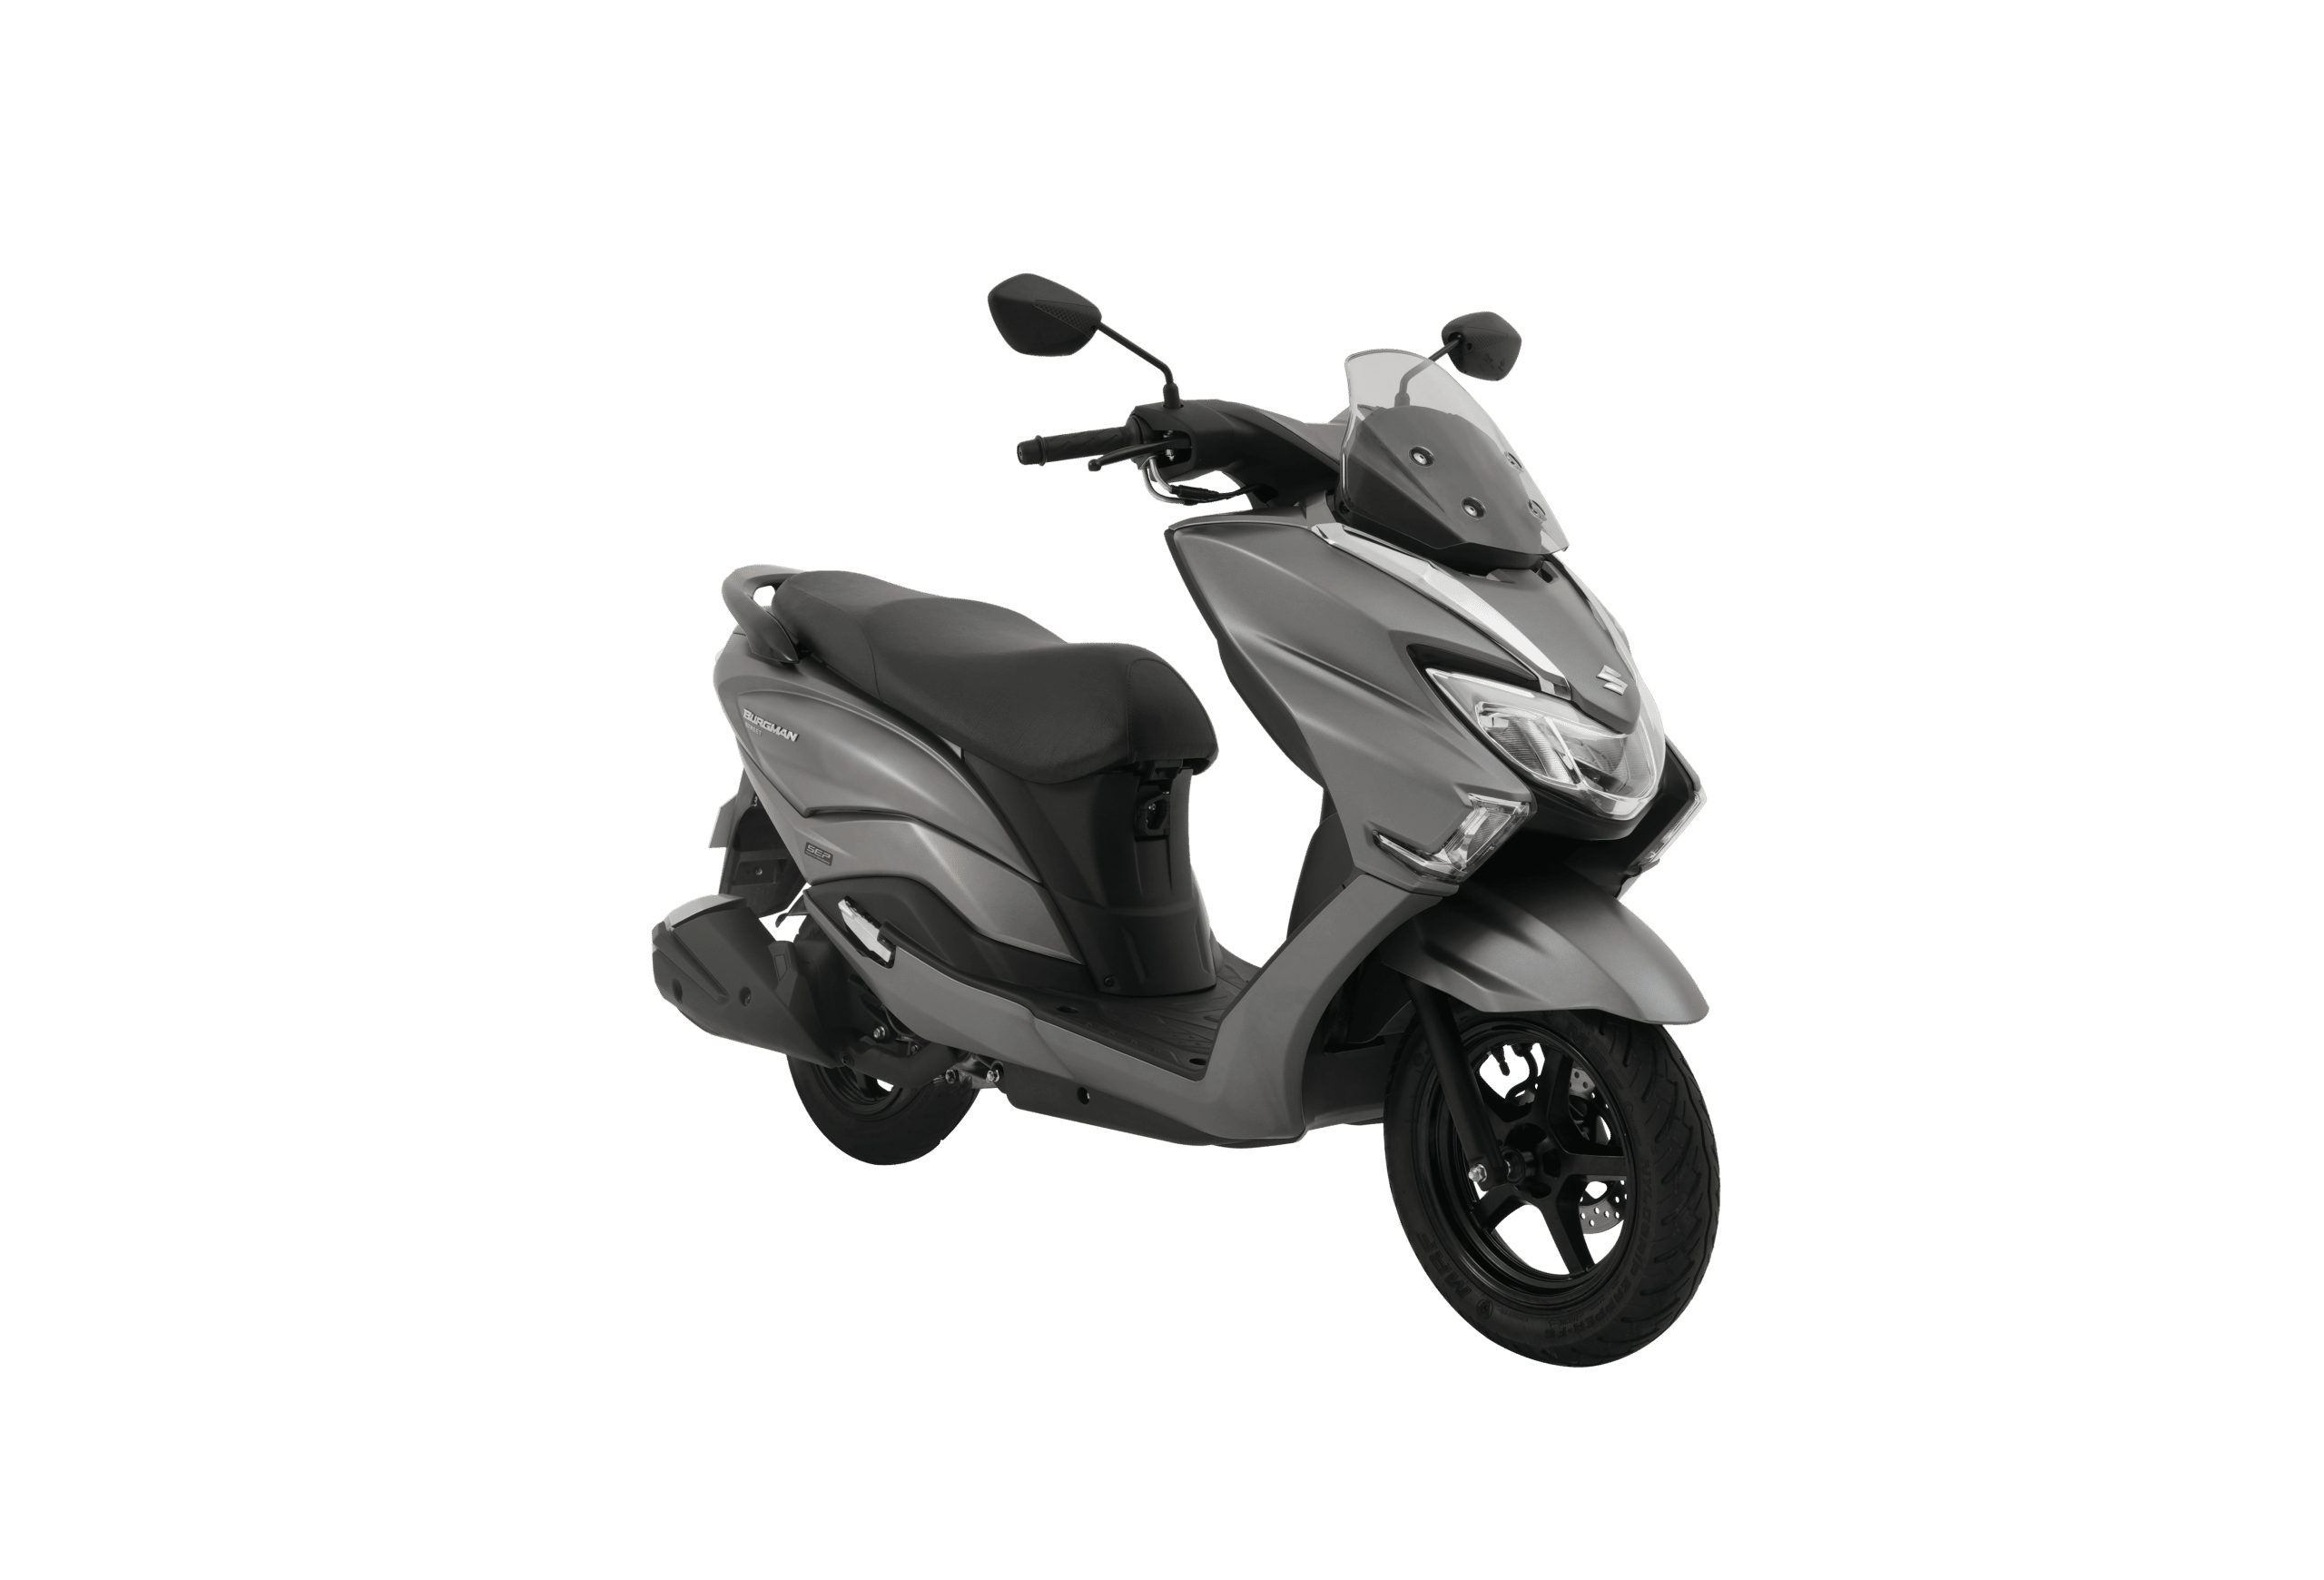 scooter motorcycle philippines